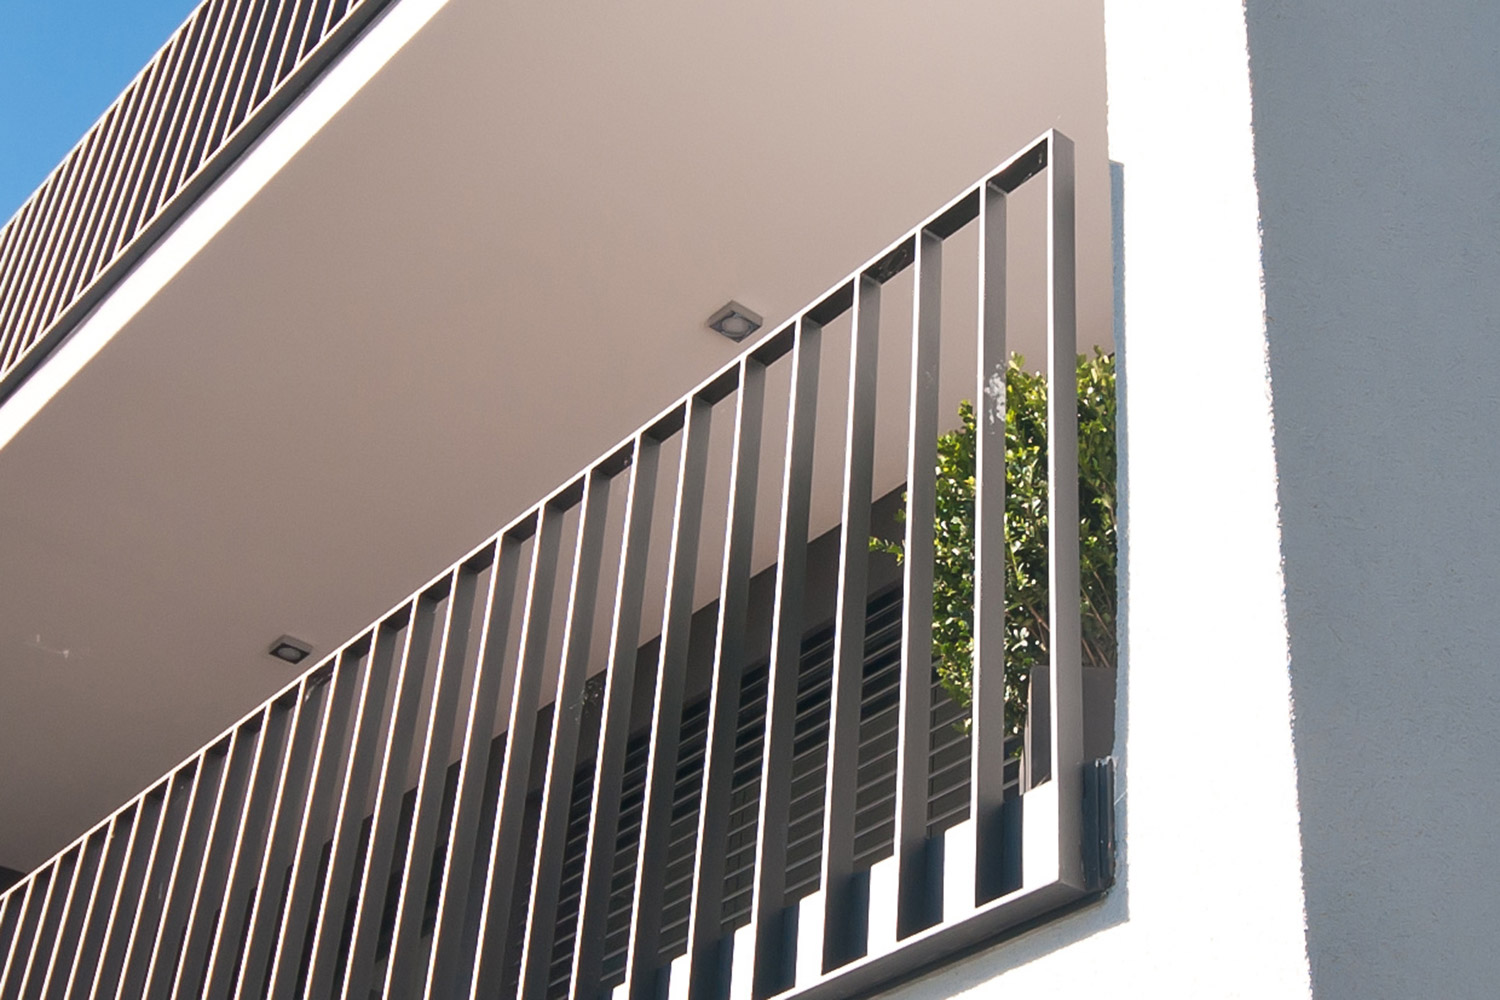 Steel-balustrade-close-up.jpg